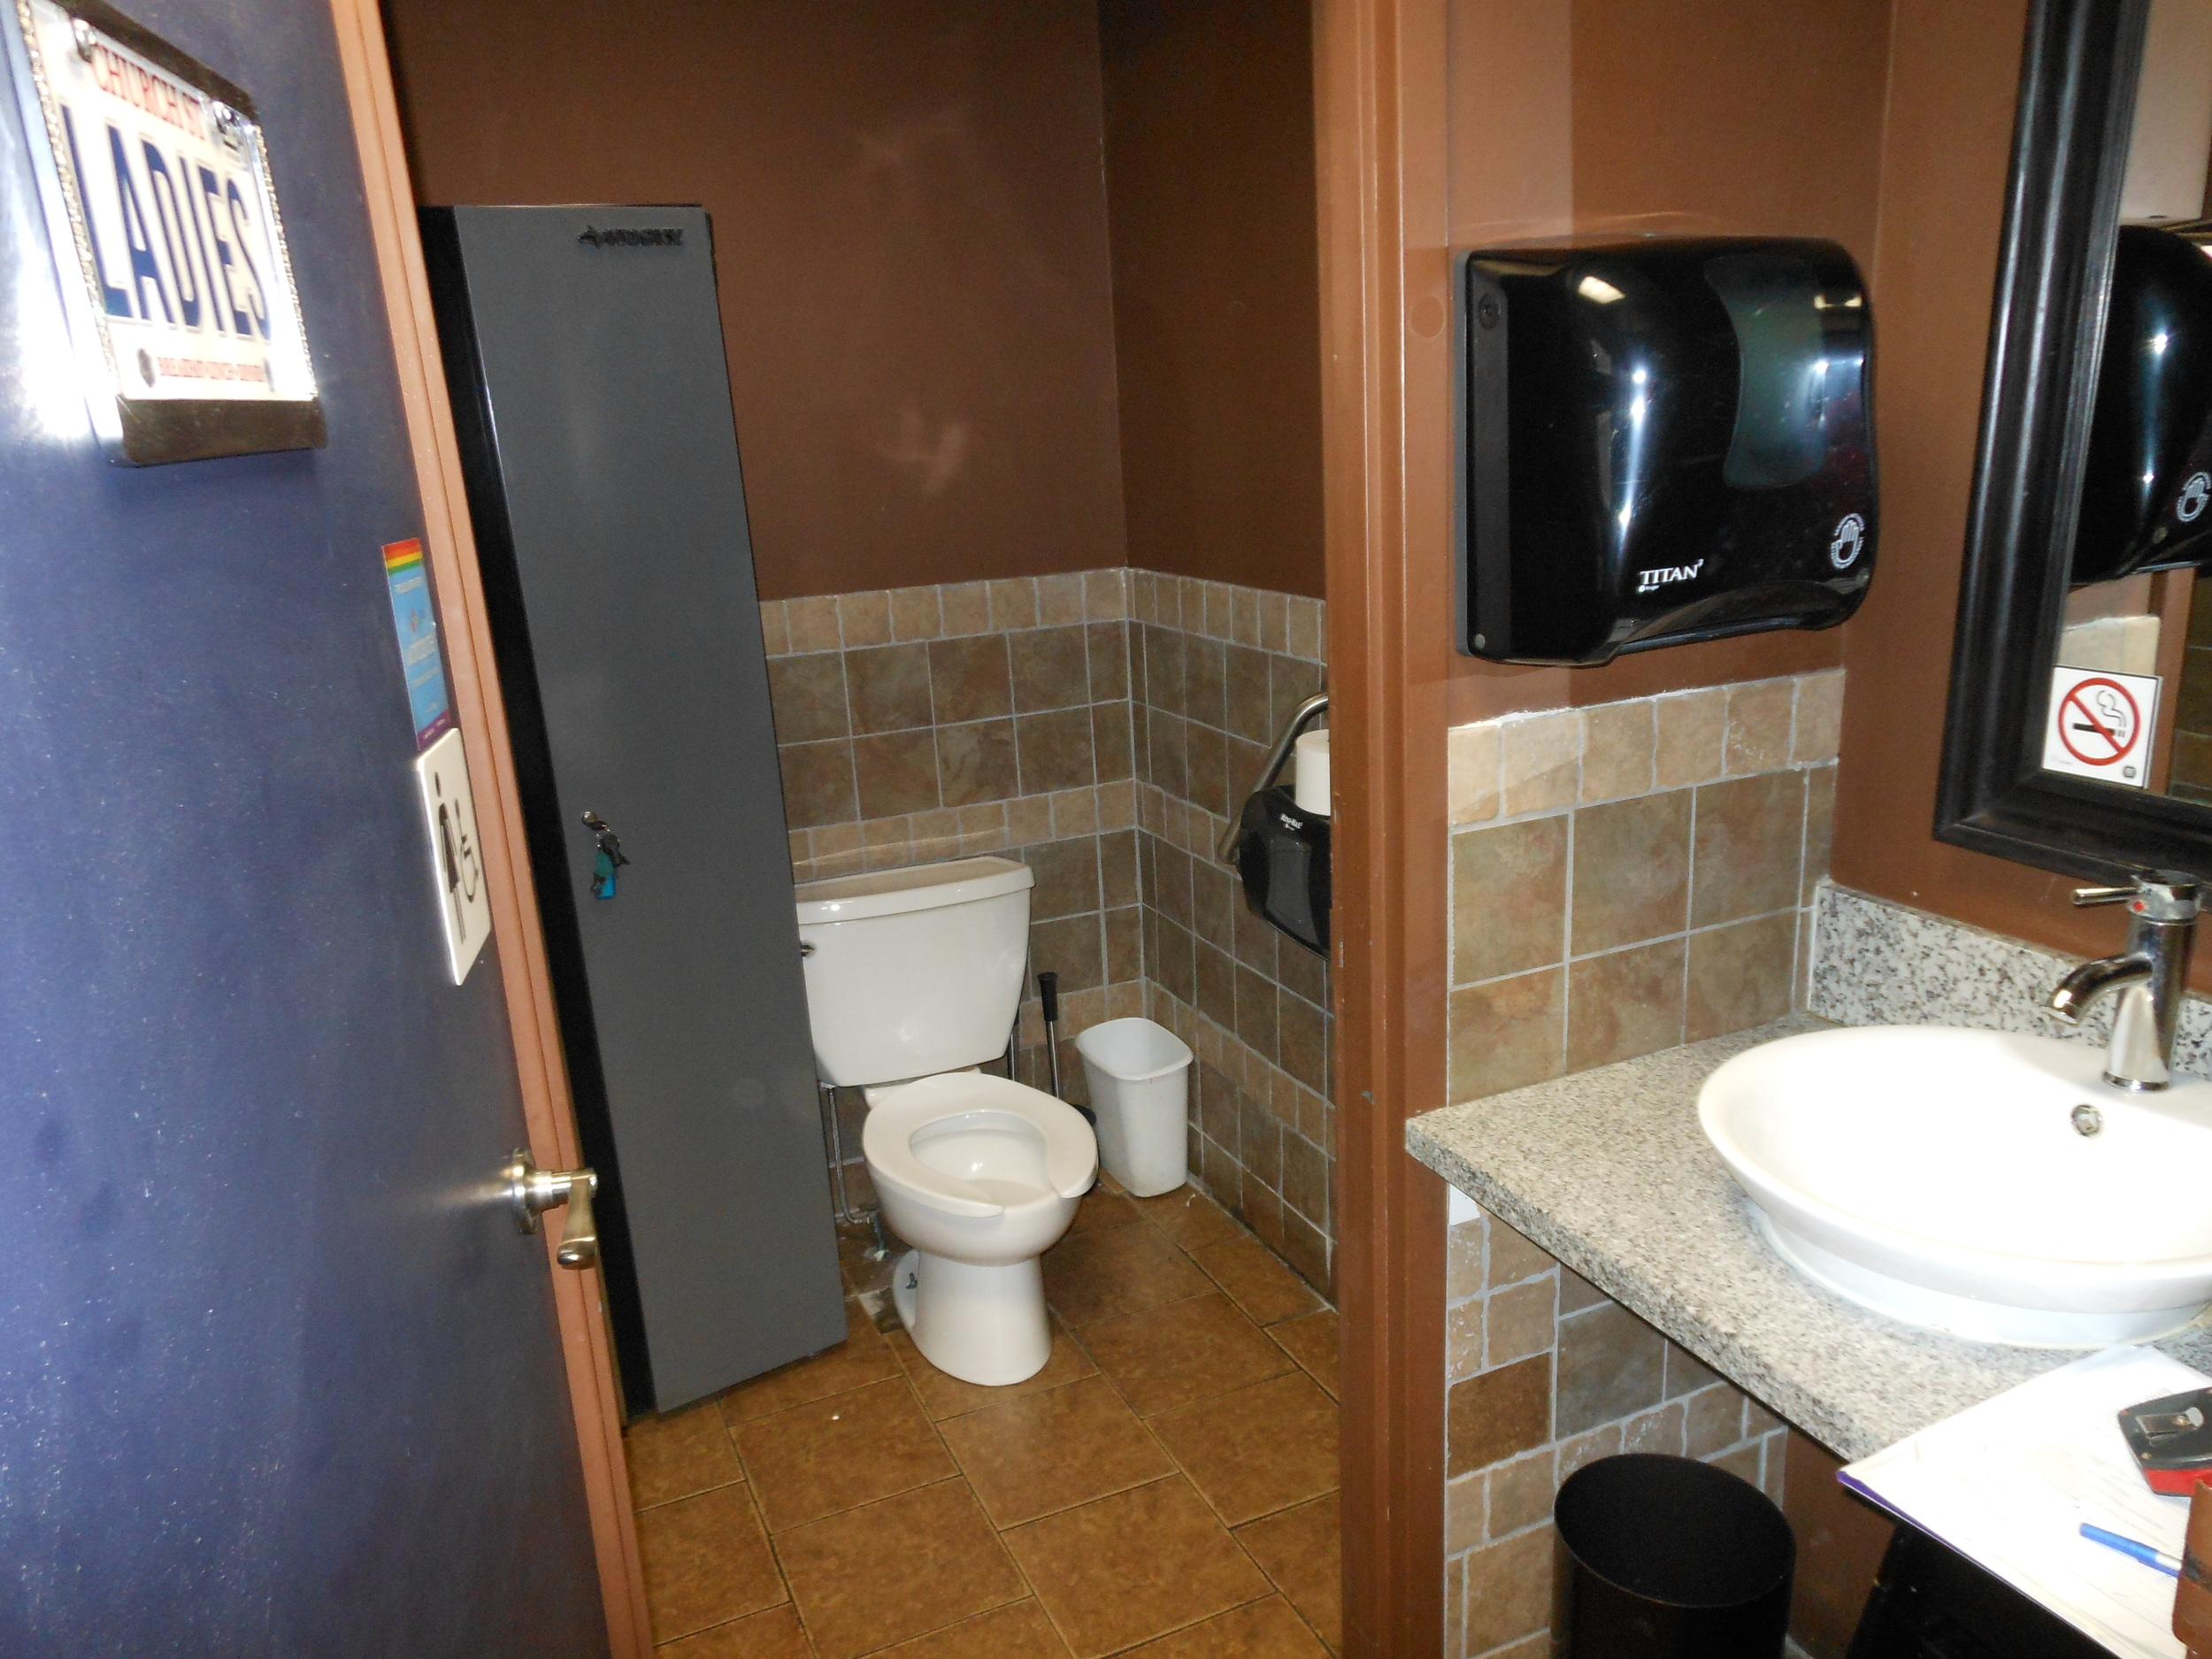 Picture of accessible bathroom.